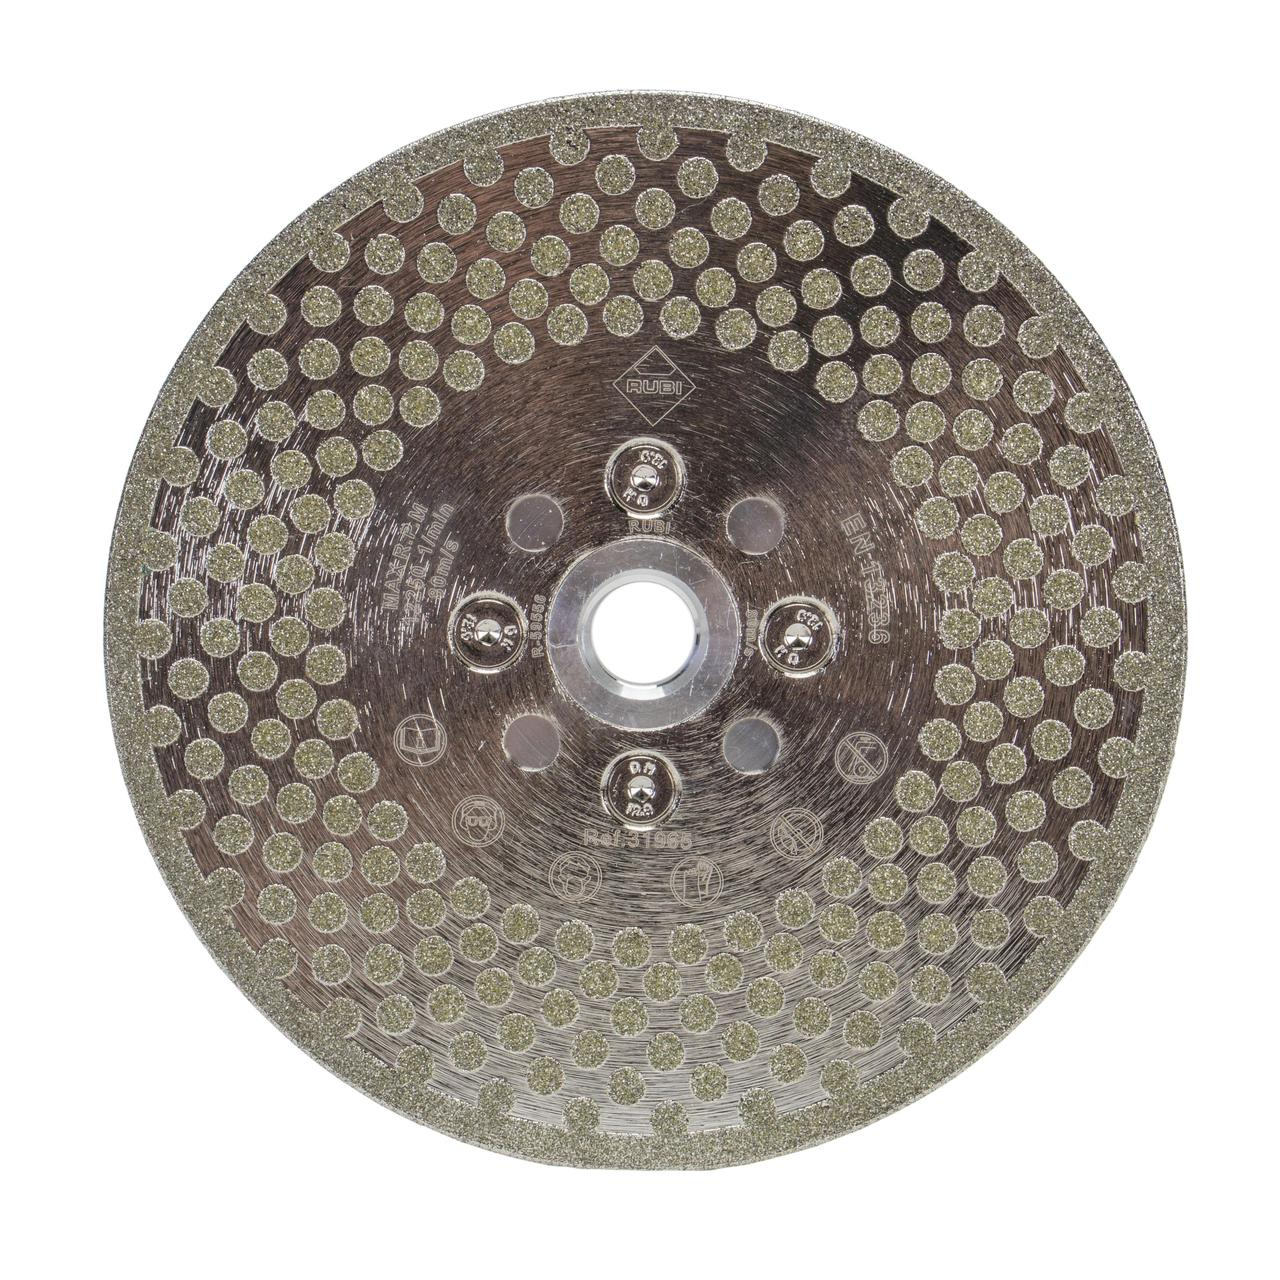 Rubi 31964 - Electroplated Cutting and Grinding Diamond Blade 115mm, ECD-115 2IN1 SUPERPRO